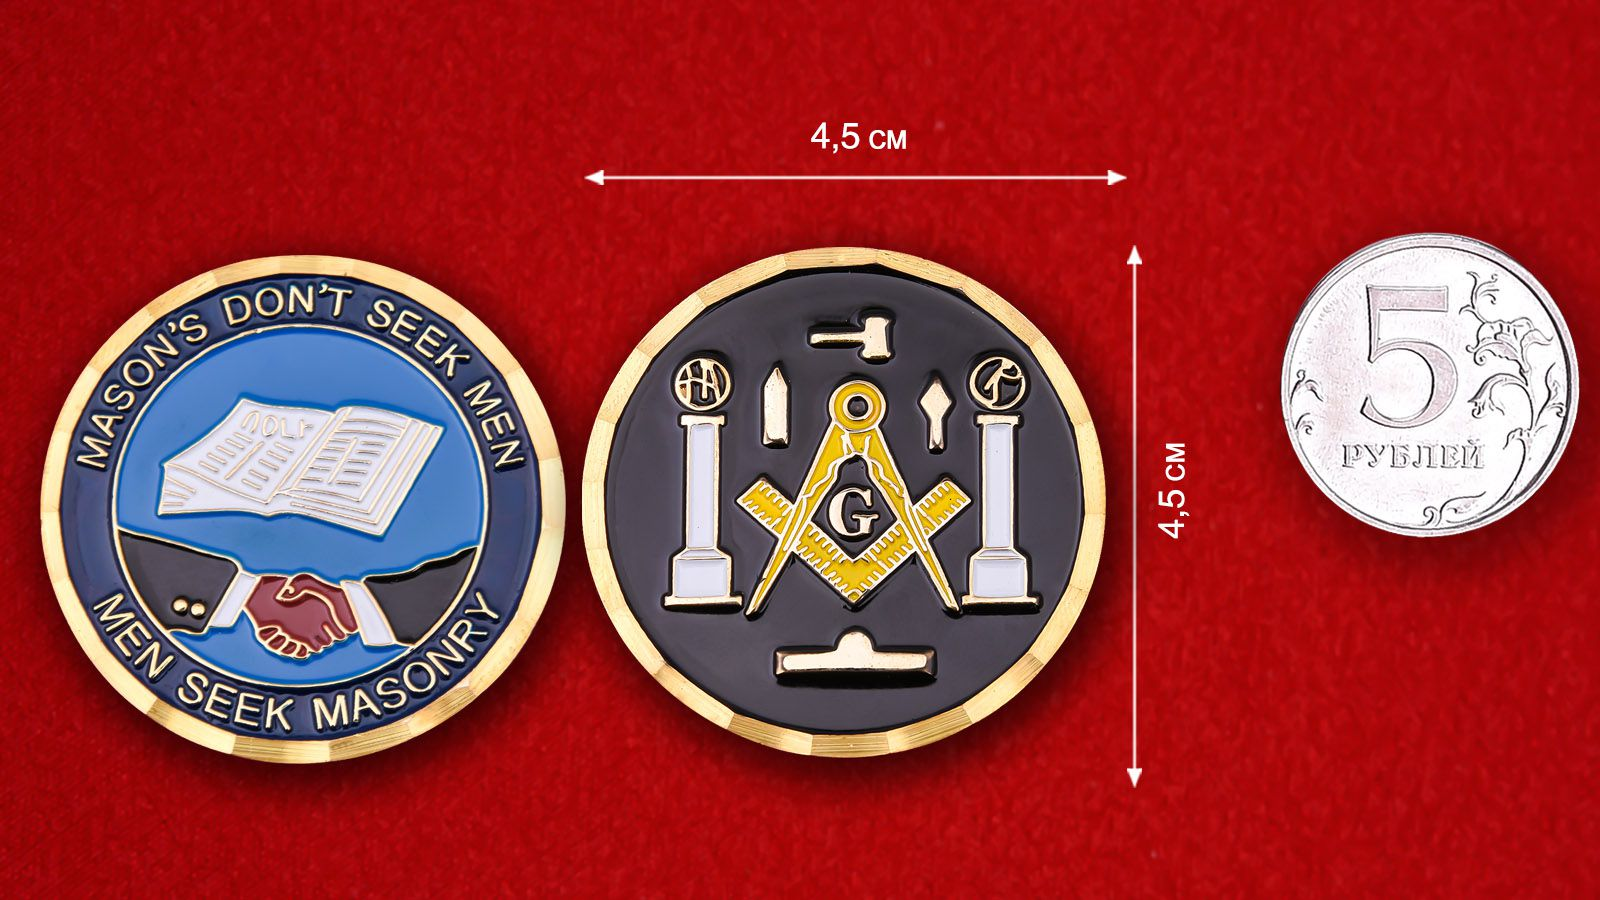 Masonic brotherhood Challenge Coin - comparative size